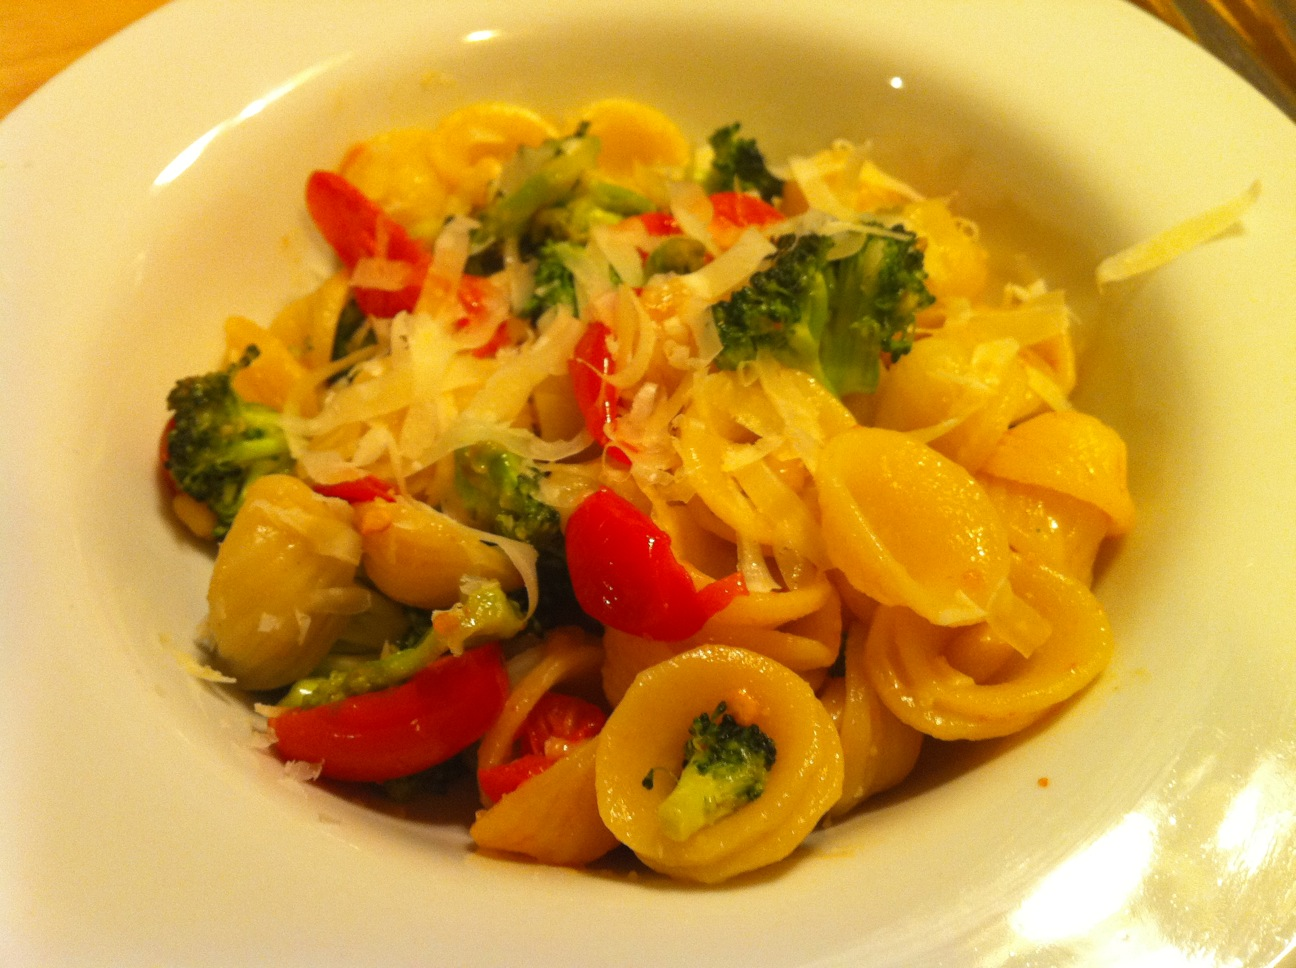 NOJuju: Orecchiette with Broccoli, Tomatoes and Pine Nuts